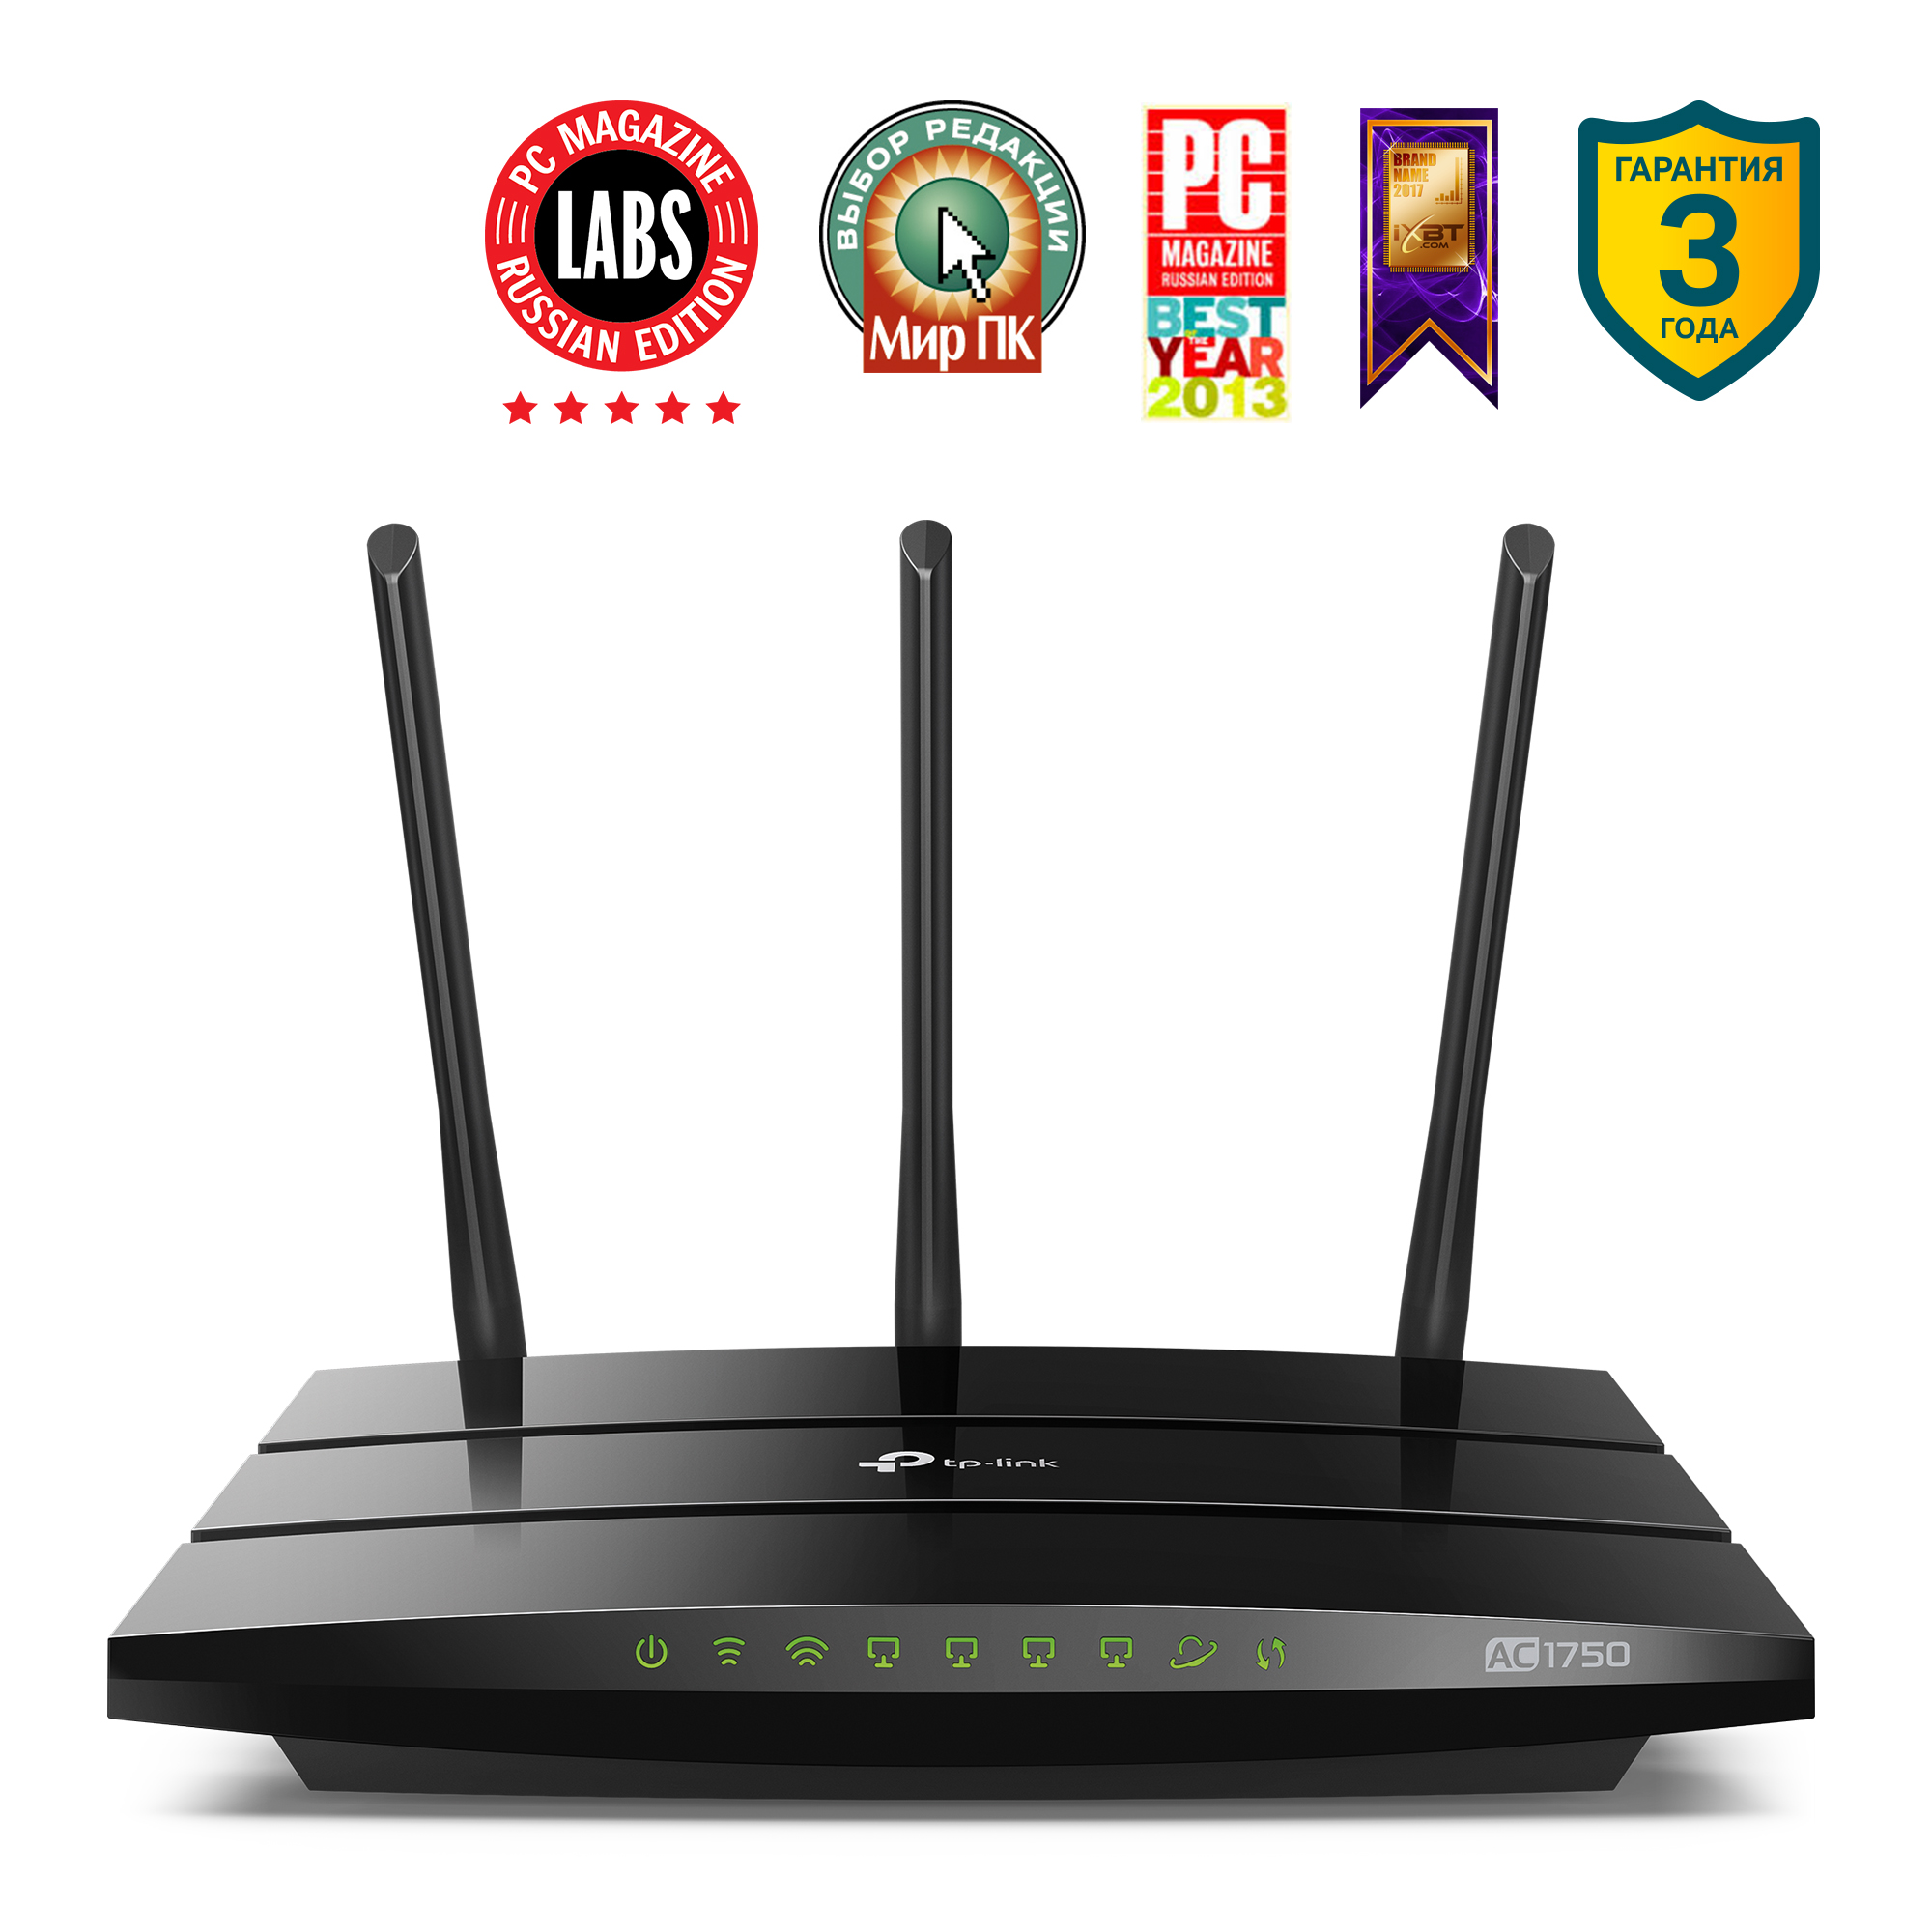 Маршрутизатор TP-LINK Archer C7 AC1750 Двухдиапазонный беспроводной гигабитный маршрутизатор betop ax1 usb bluetooth double vibration wireless gamepad joypad games controller handle games for pc for ps3 for android